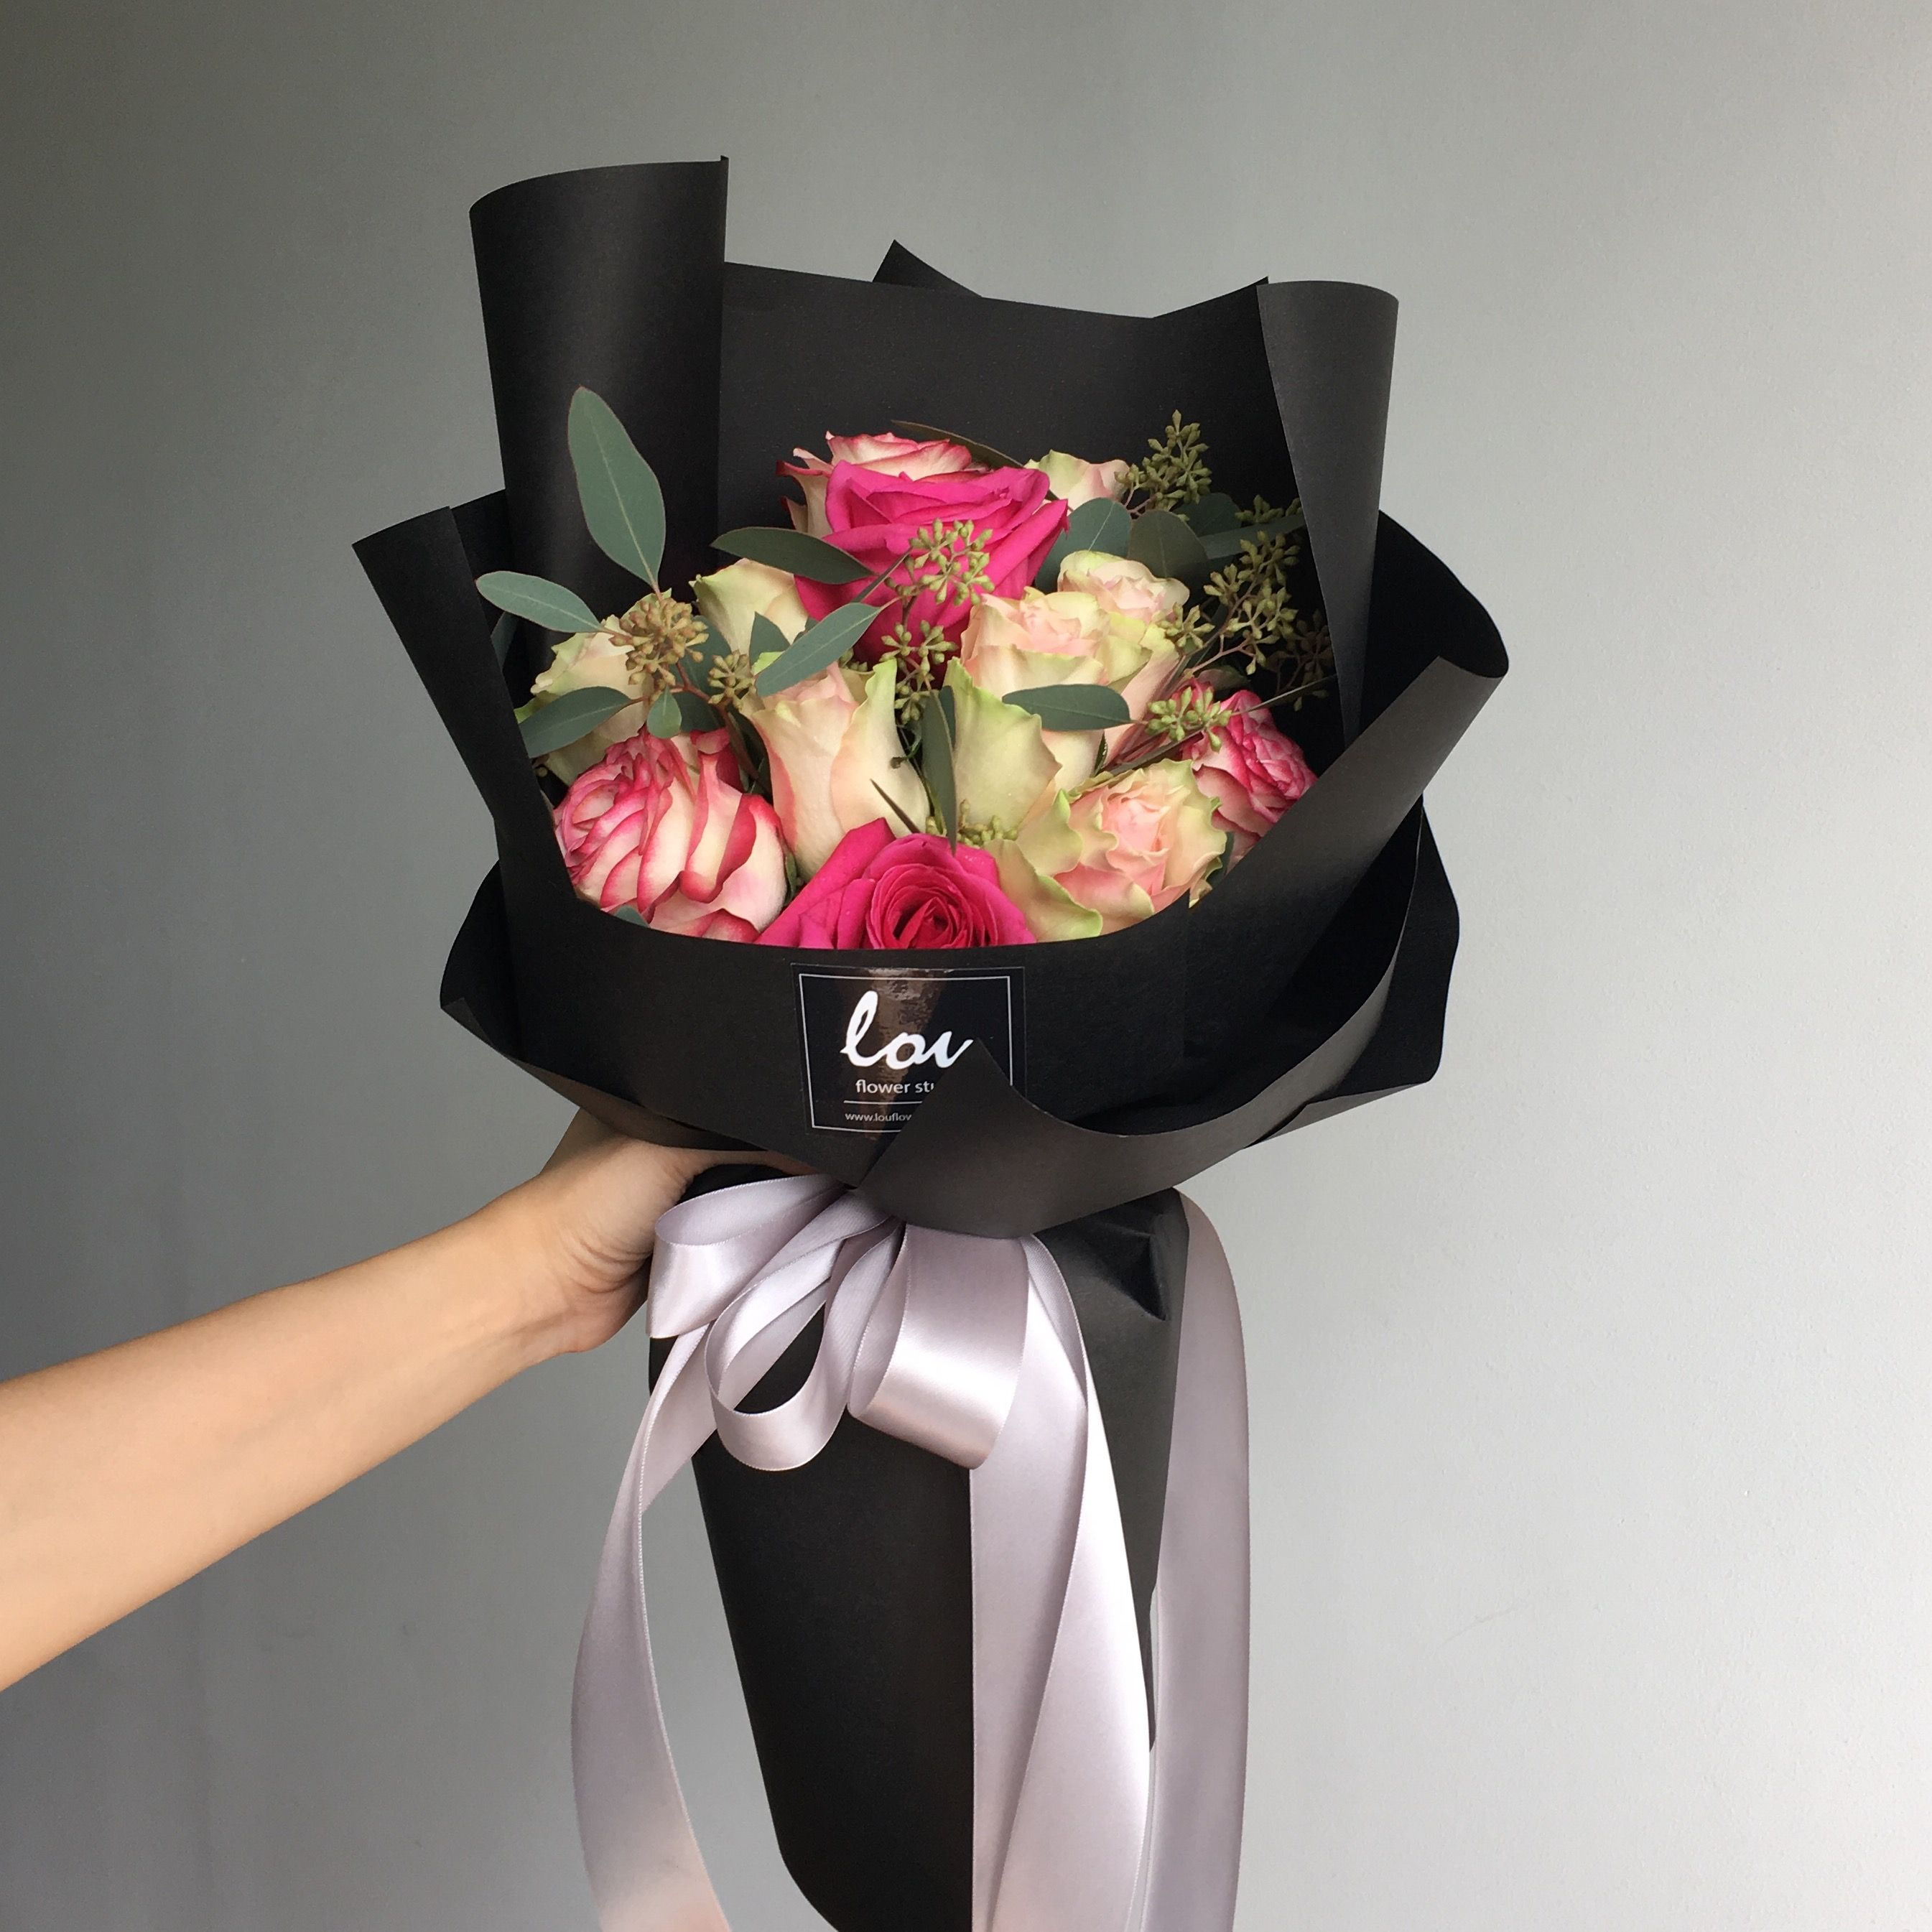 A Mix Of Ecuador Fuchsia Sylvie Matilda And Kenya Red Tipped Roses In Black Classic Wrap Bunga